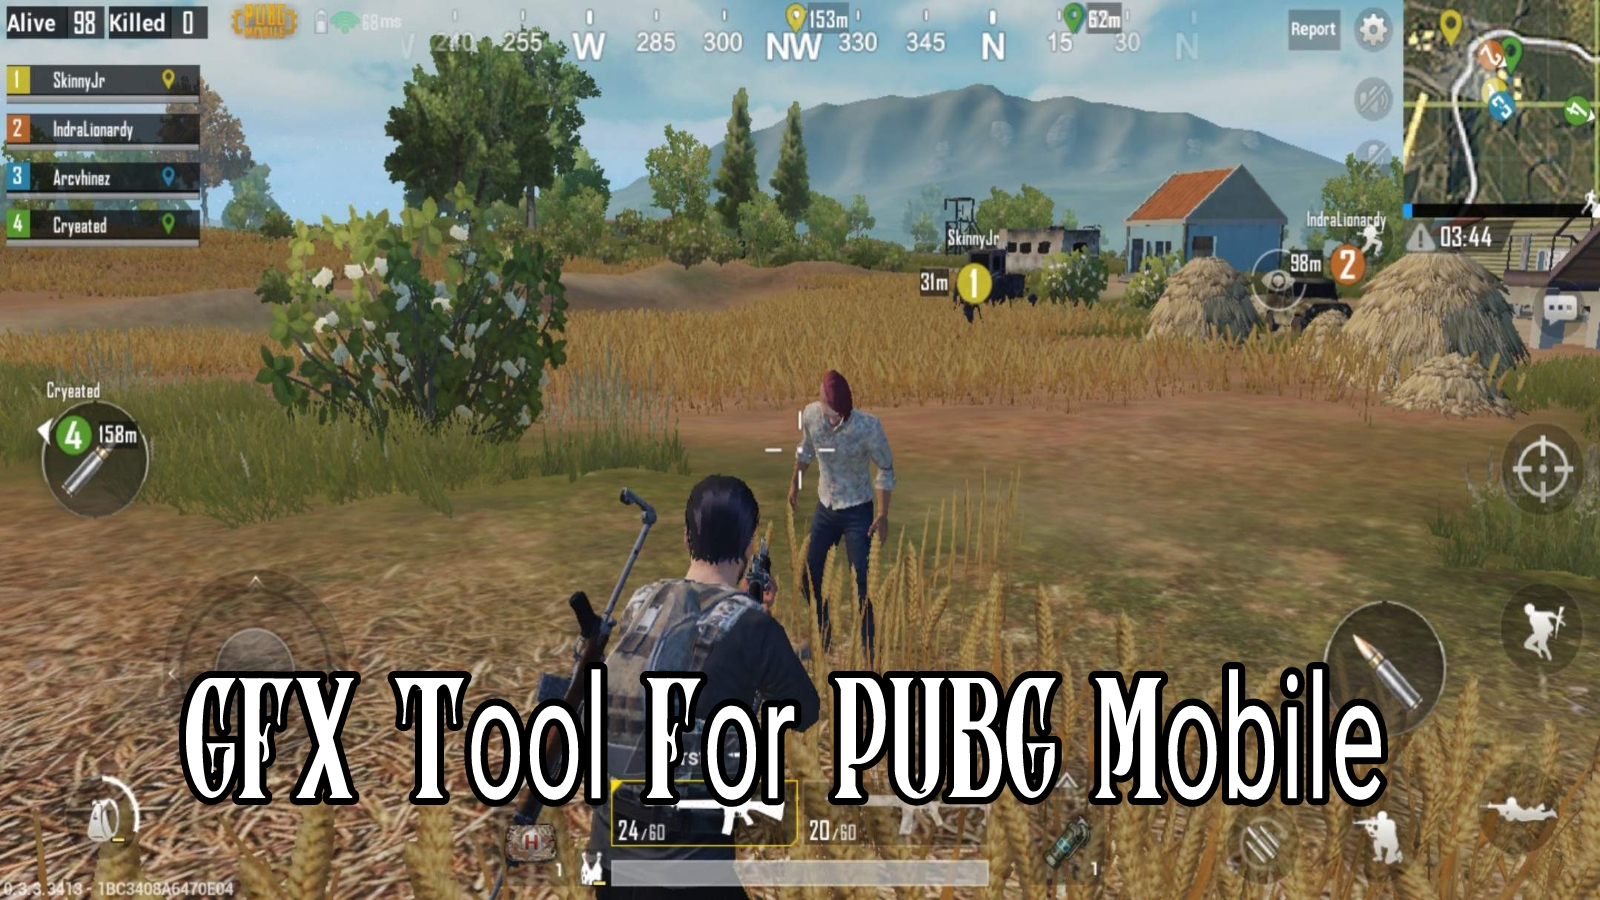 Is It Safe To Use GFX Tool For PUBG Mobile ? - MoboGamer